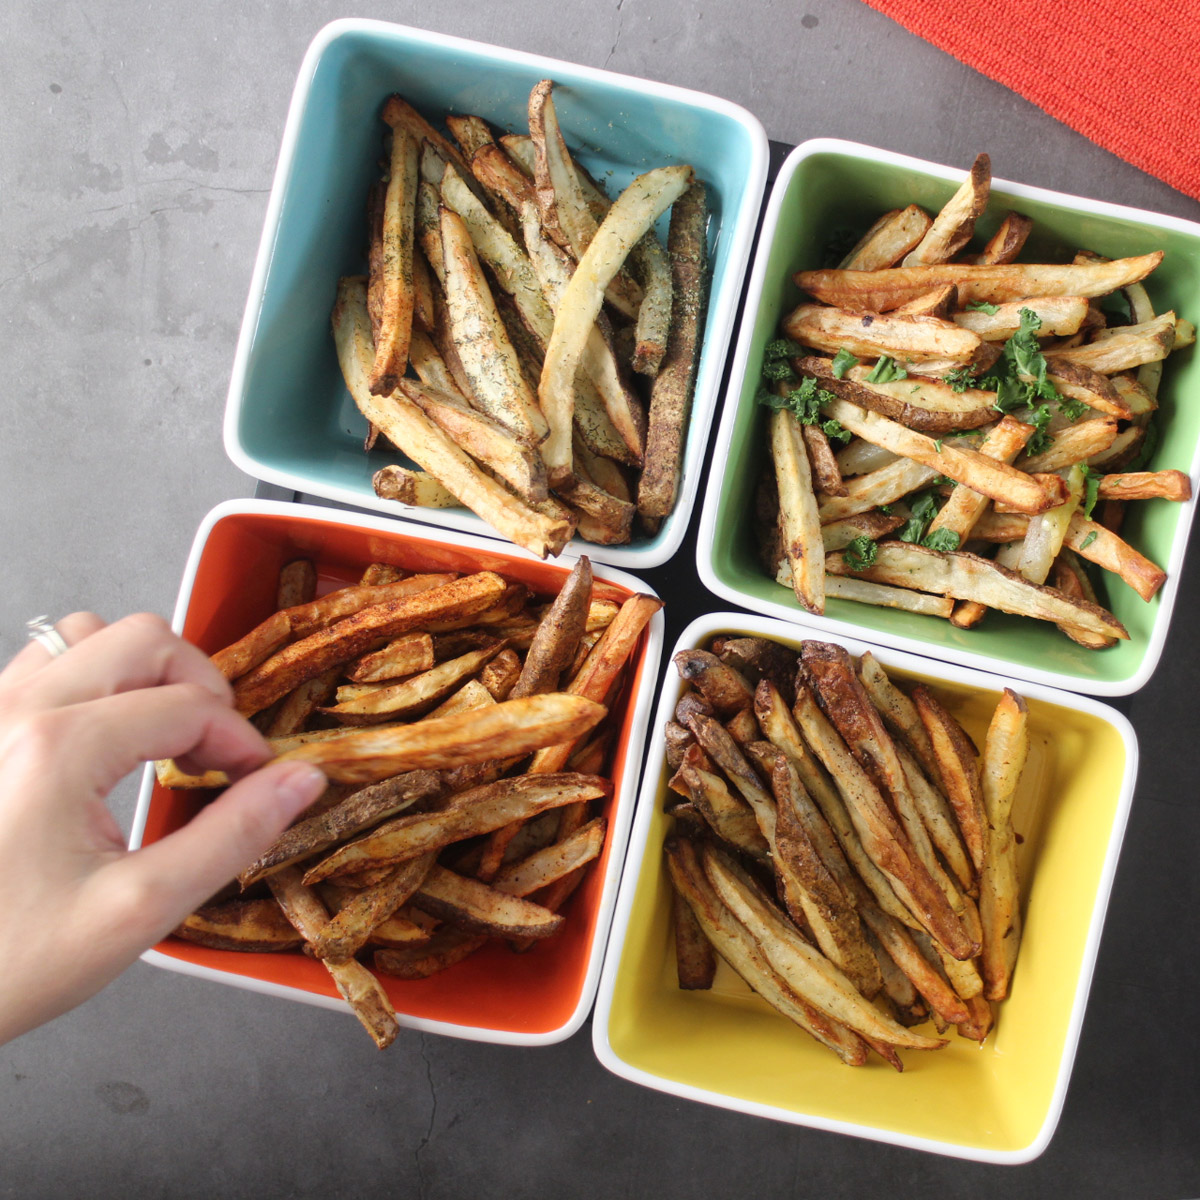 hand picking up a fry from a tray of seasoned air fryer french fries